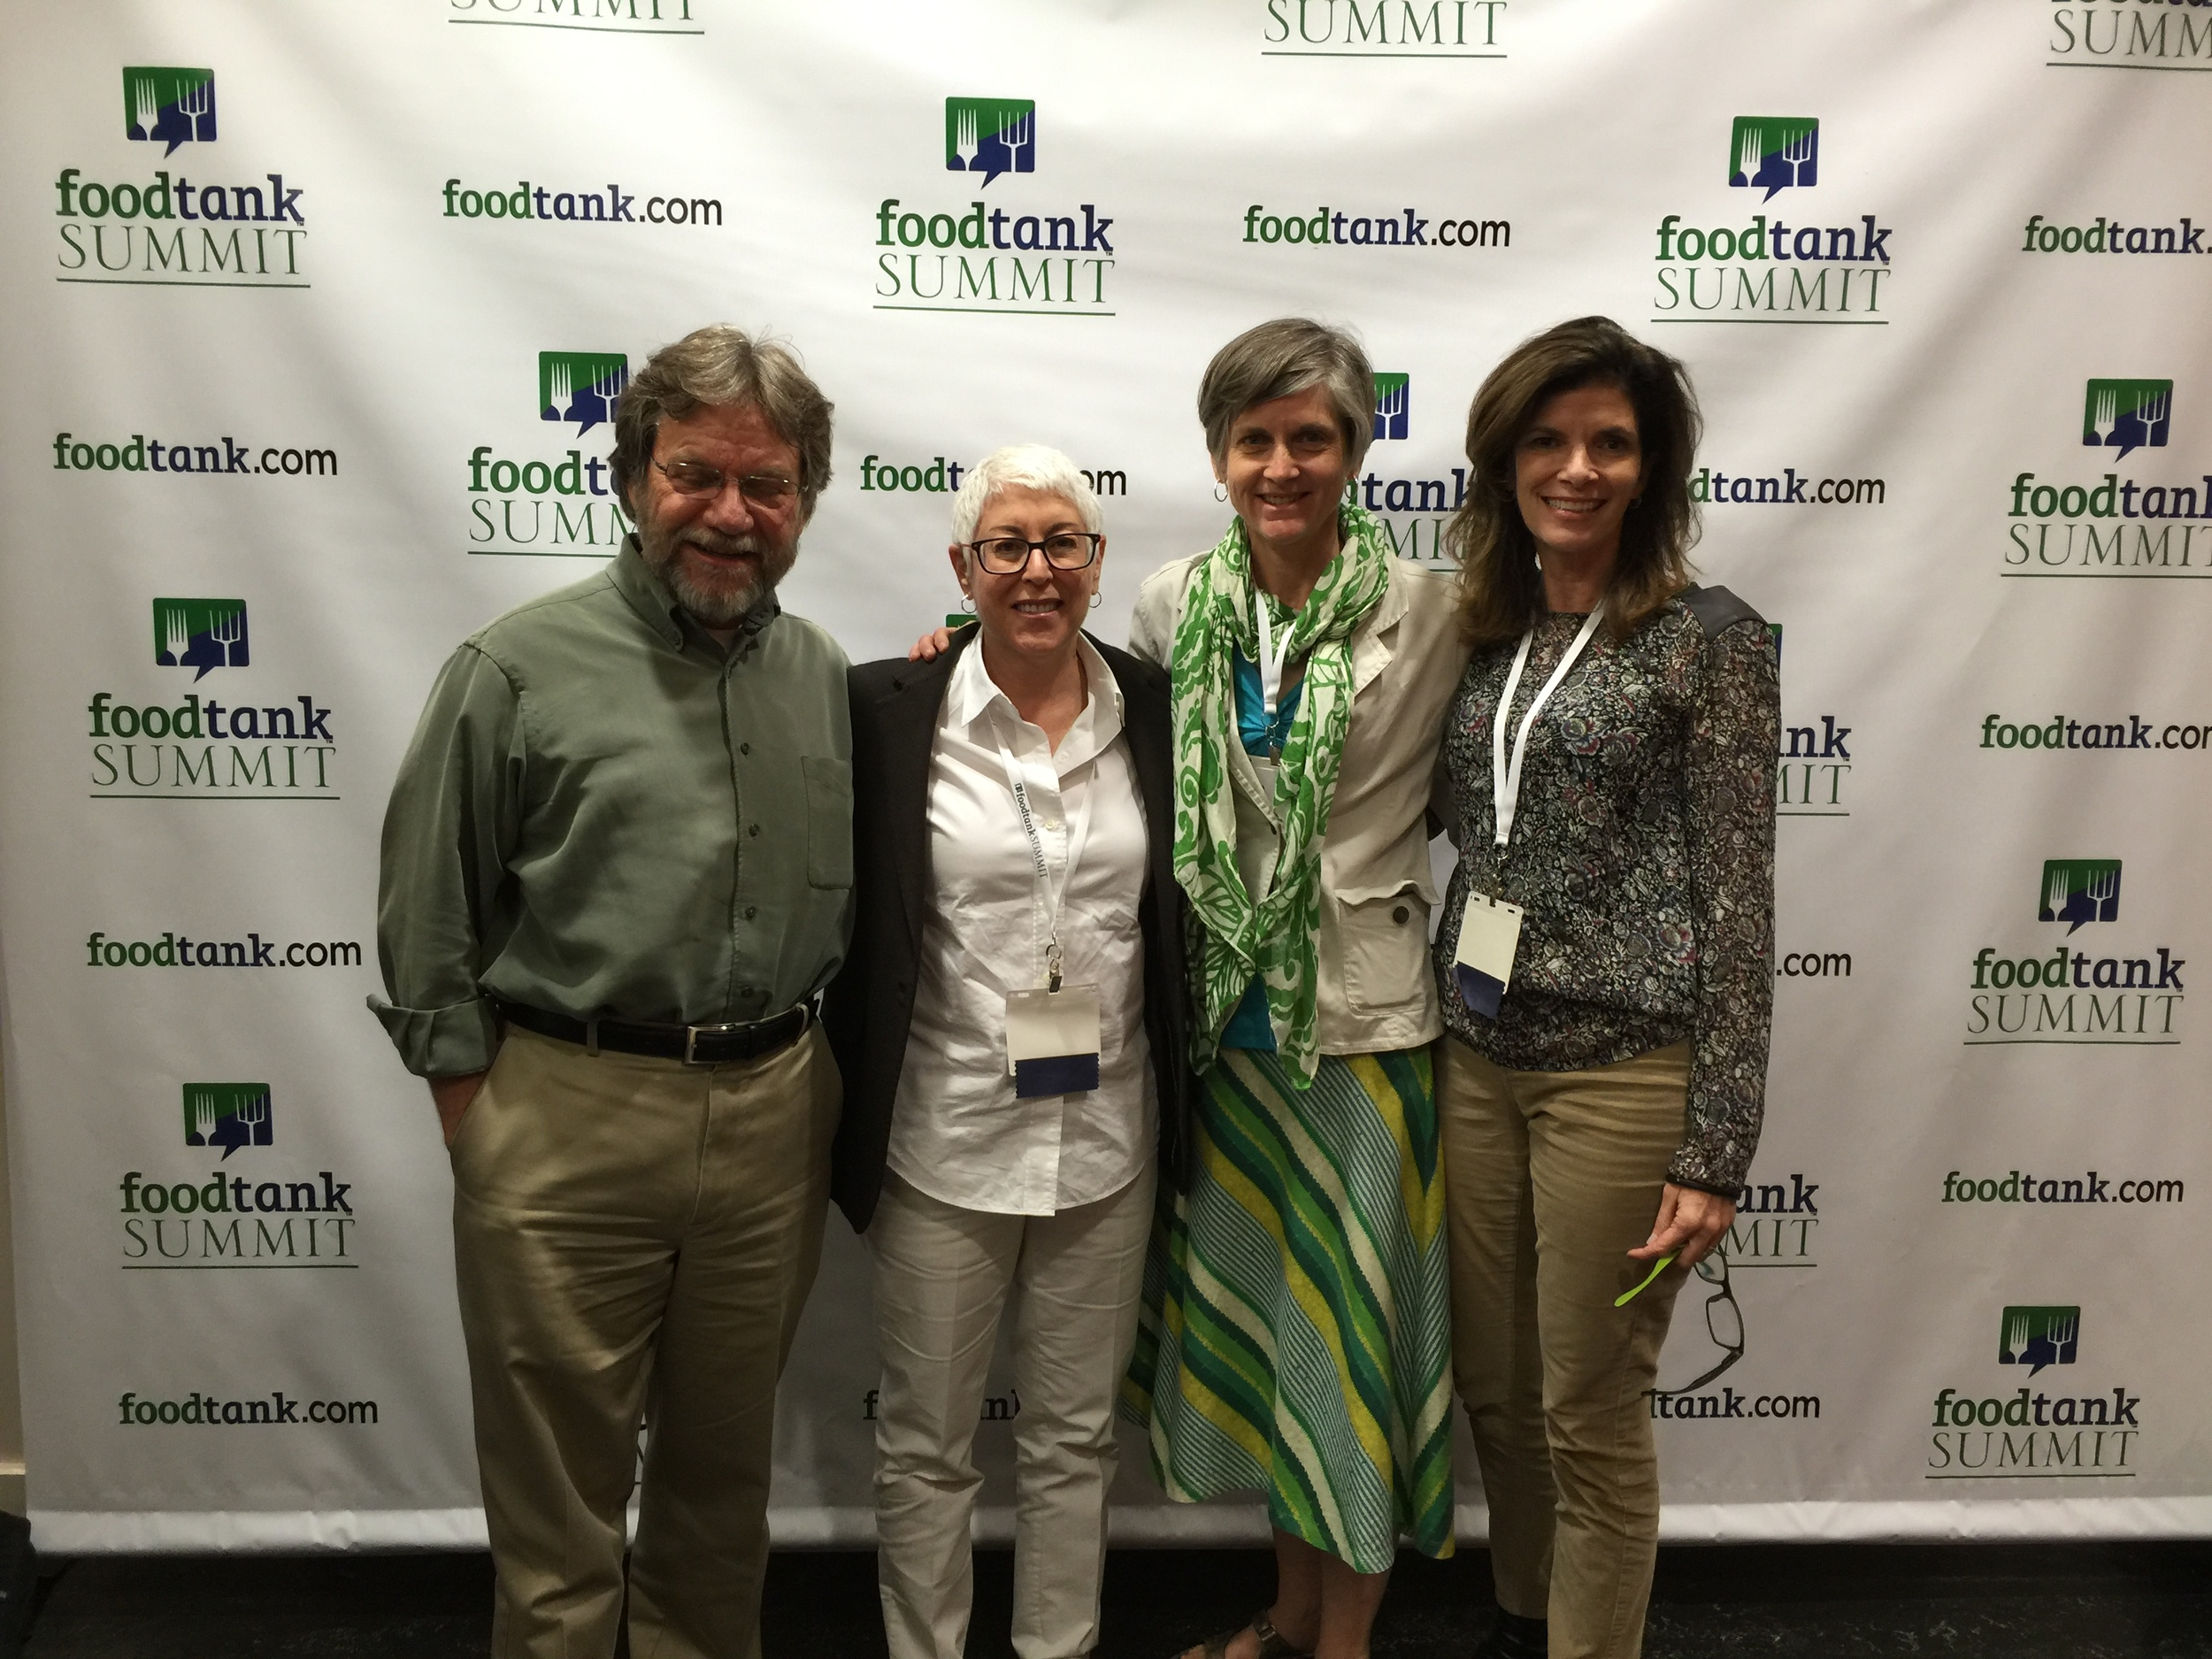 At the Food Tank Summit 2016 in Washington, DC. L to R: Bill Bolling, Food Well Alliance Chairman; Ellen Macht, Food Well Alliance Innovation and Strategy; Alice Rolls, Georgia Organics Executive Director; Bobbi de Winter, Food Well Alliance Executive Director.